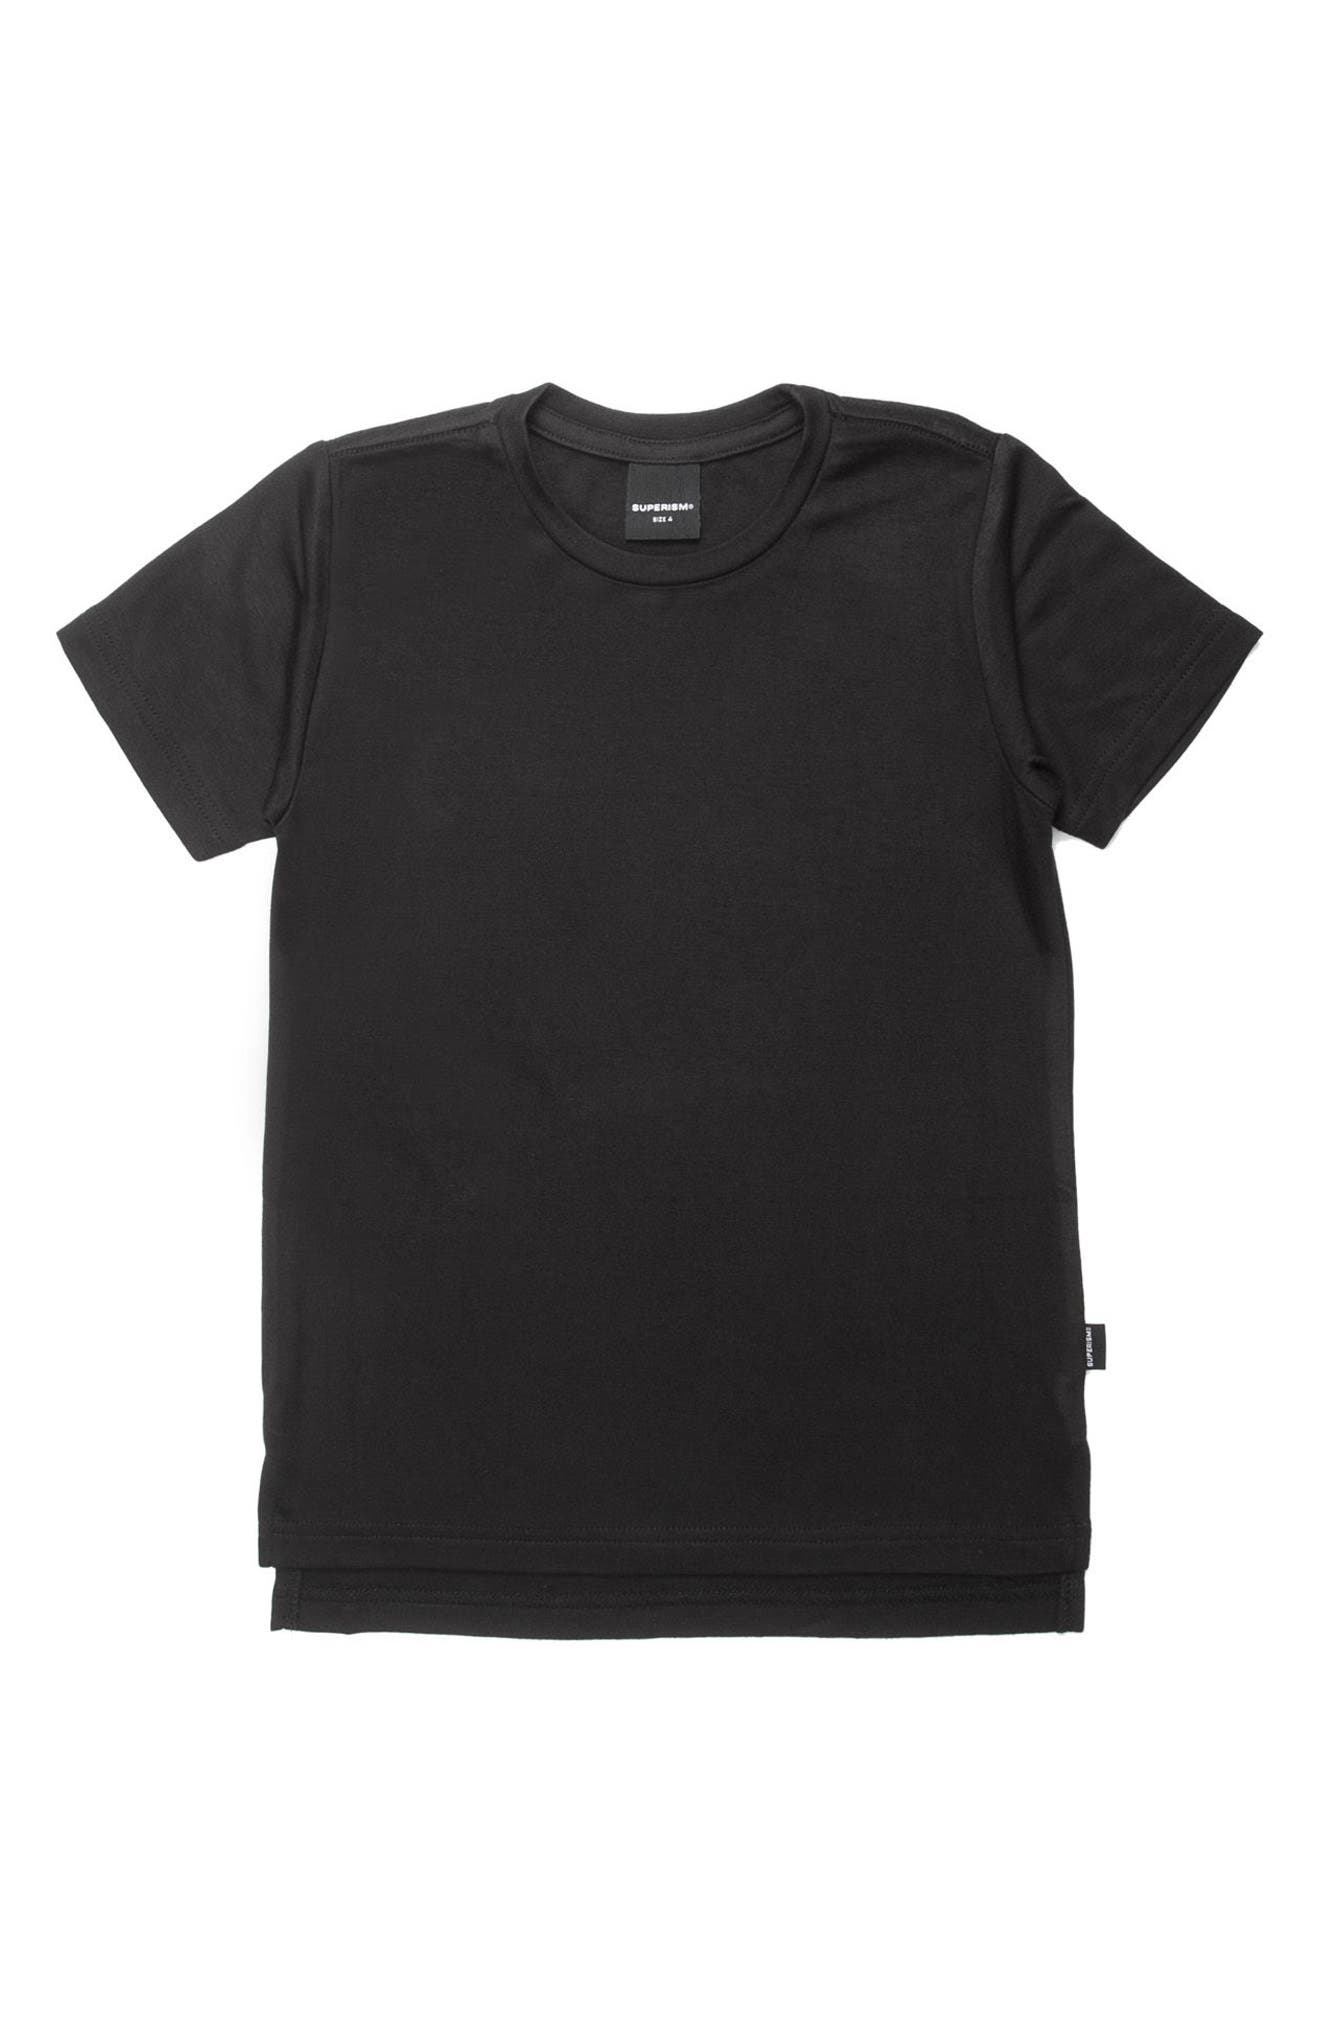 Brycen T-Shirt,                             Main thumbnail 1, color,                             Black